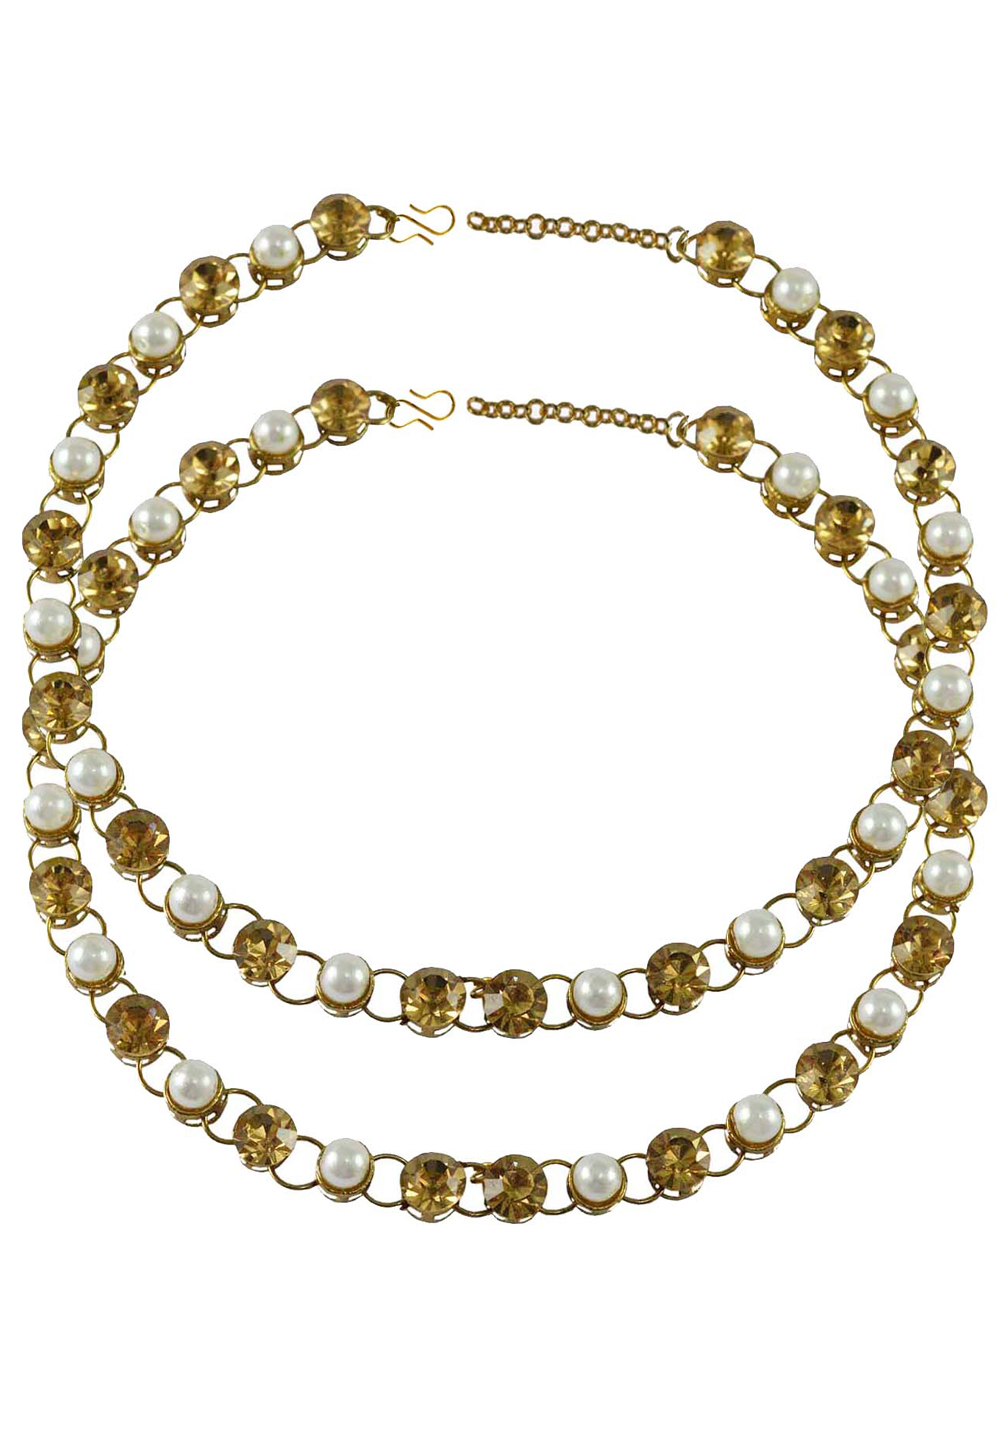 Golden Brass Gold Plated Anklets 171260